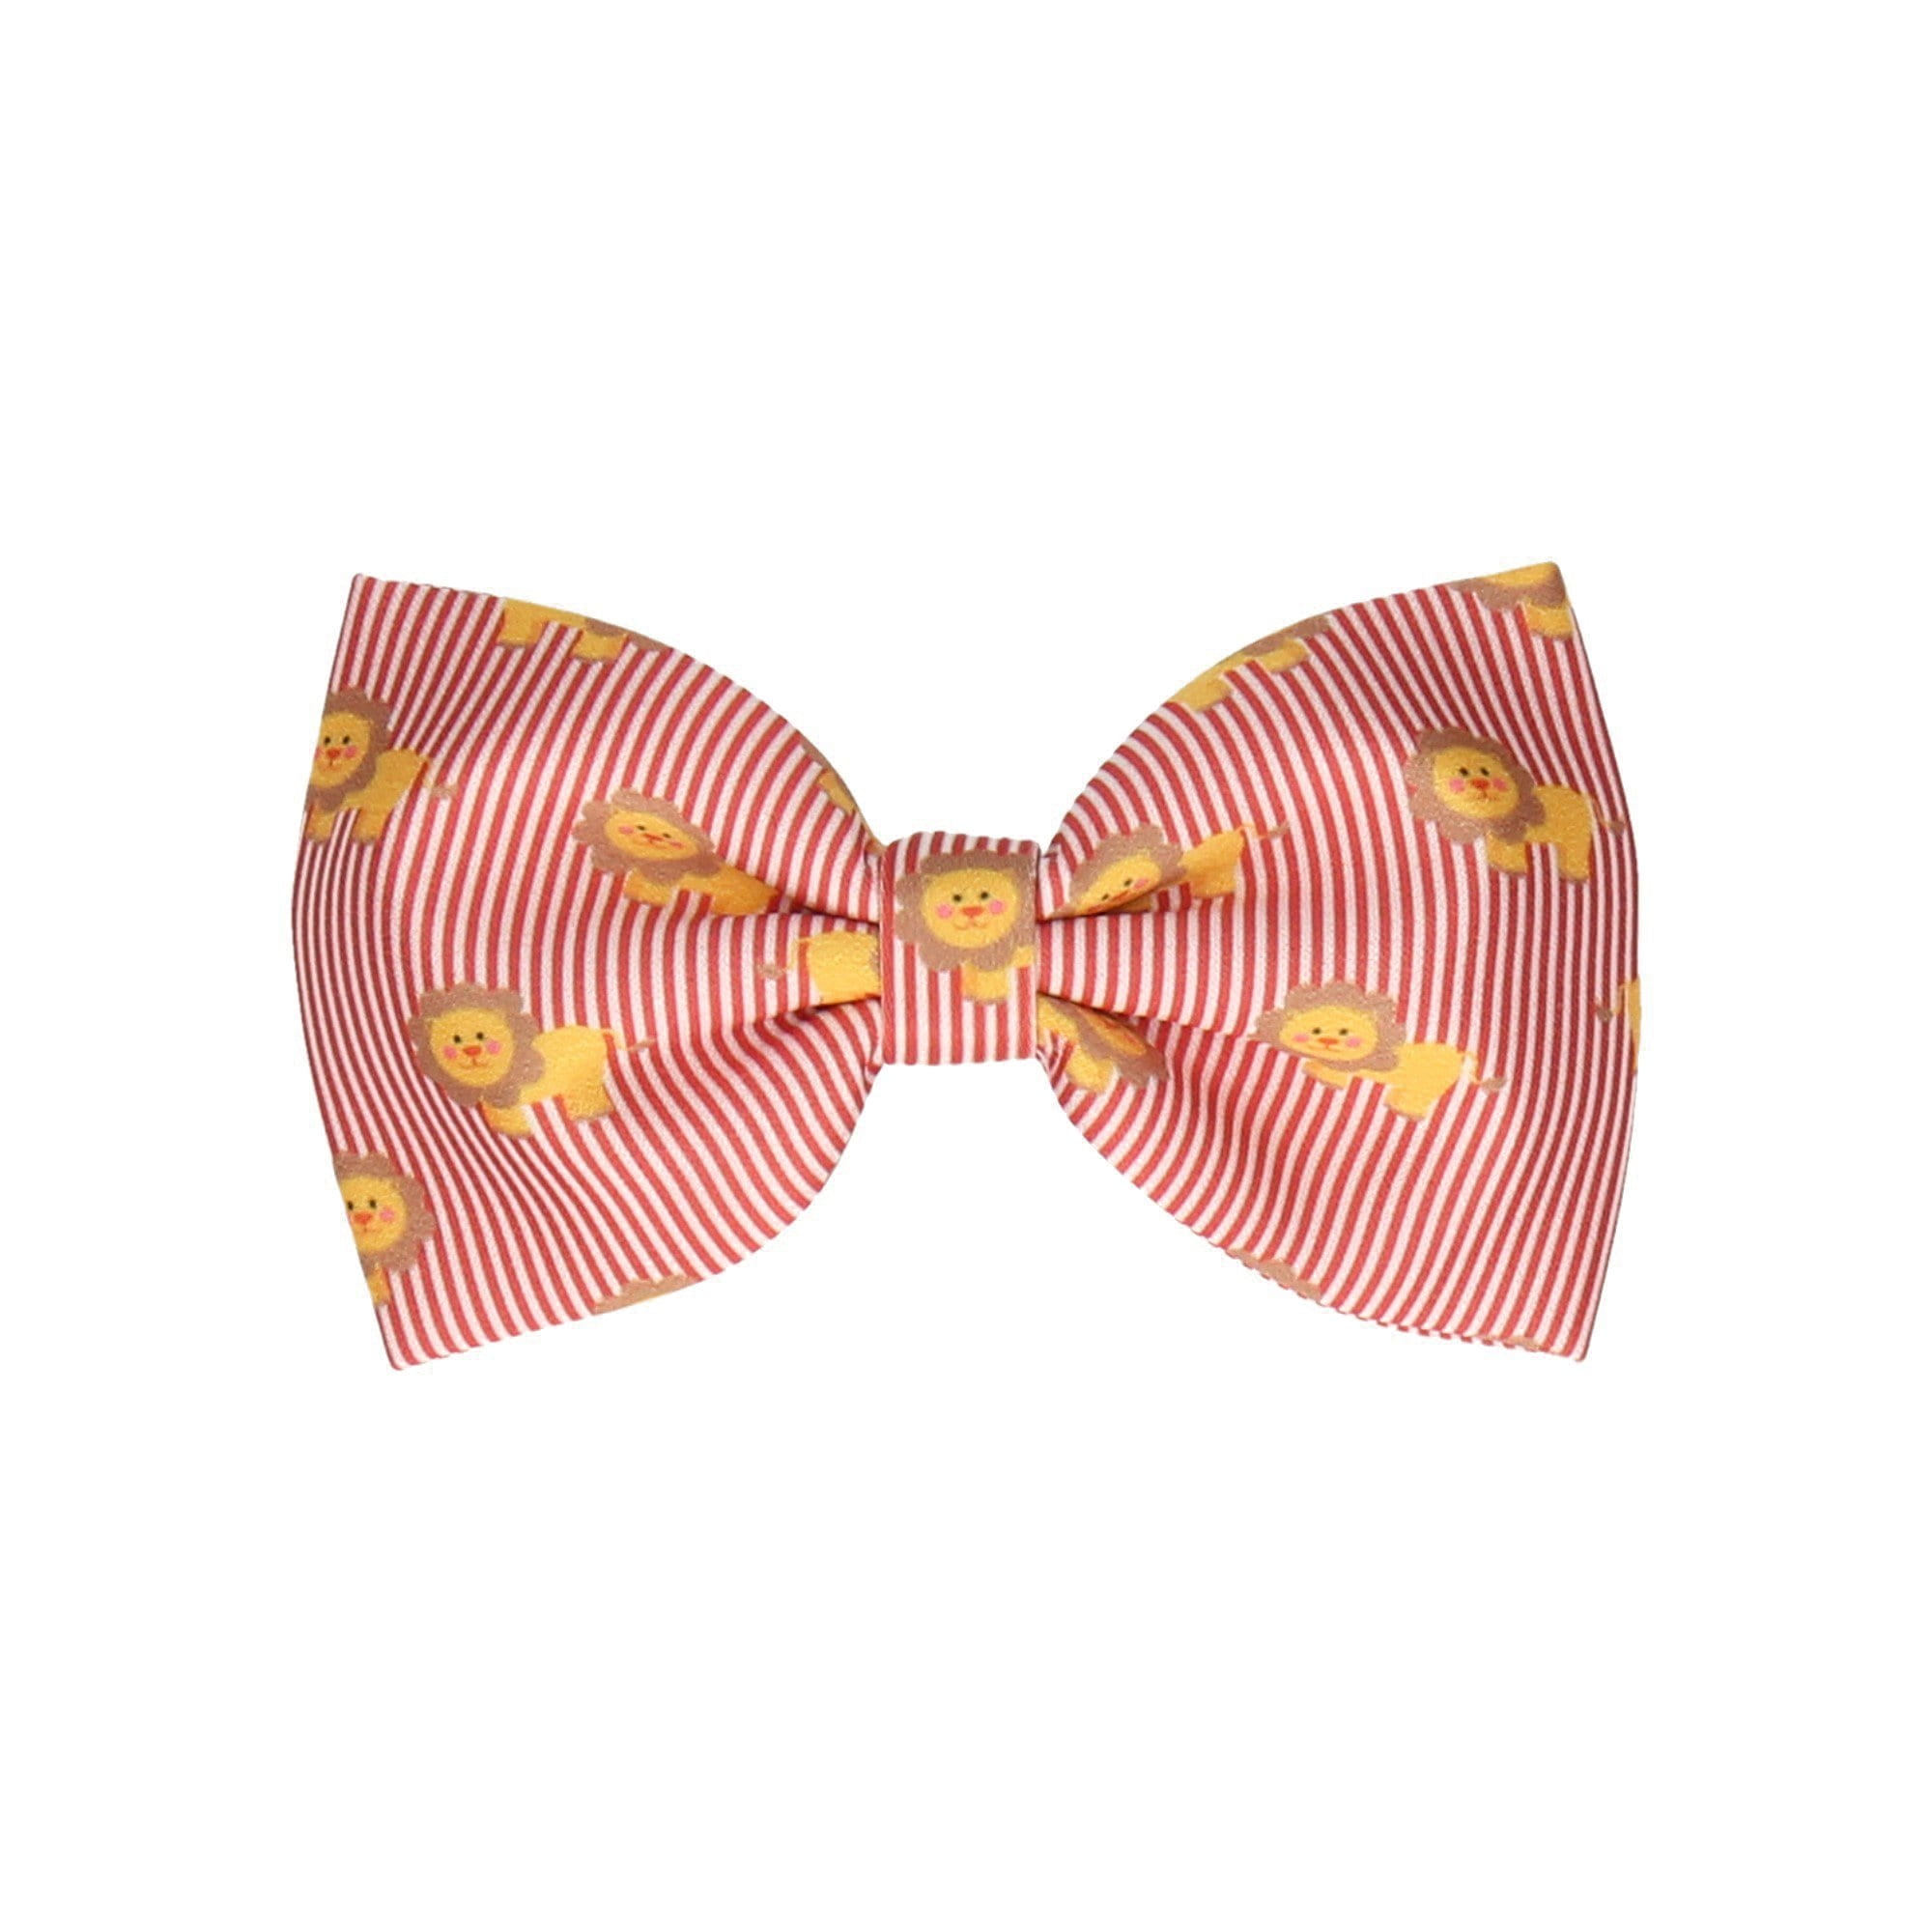 Circus Lions (Child's Bow Tie)